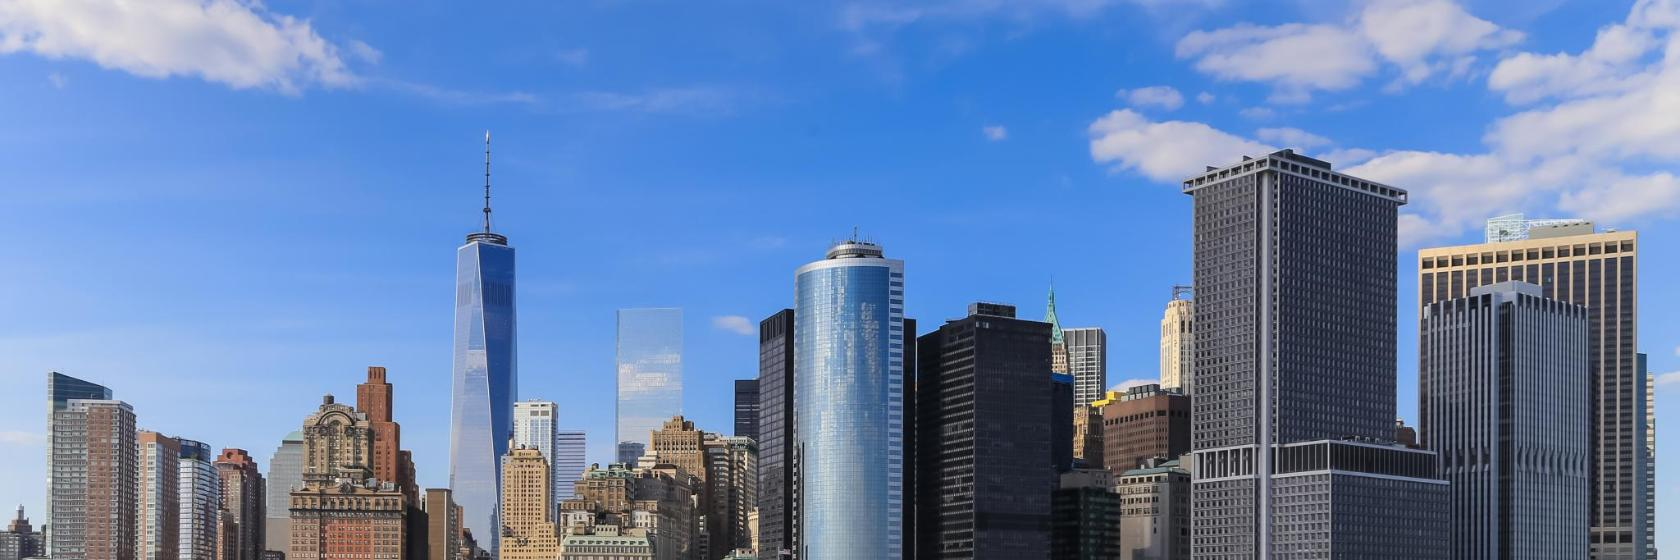 Ibis A New York the 10 best hotels in wall street - financial district, new